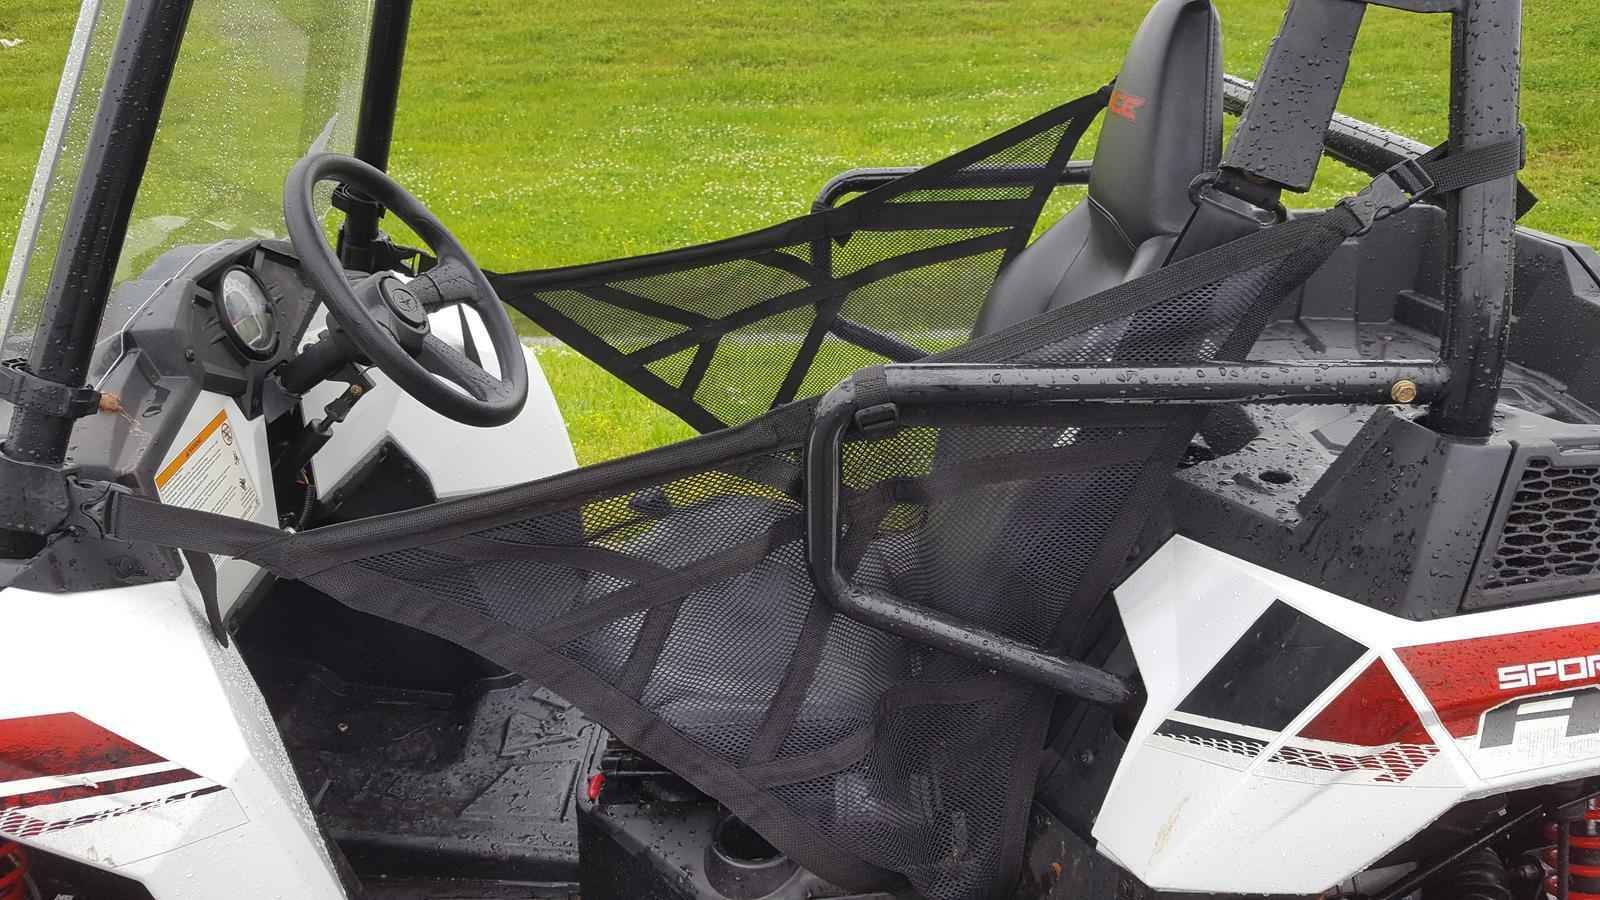 Used 2014 Polaris ACE 325 ATVs For Sale in Tennessee. 2014 POLARIS ACE 325, PO.131656